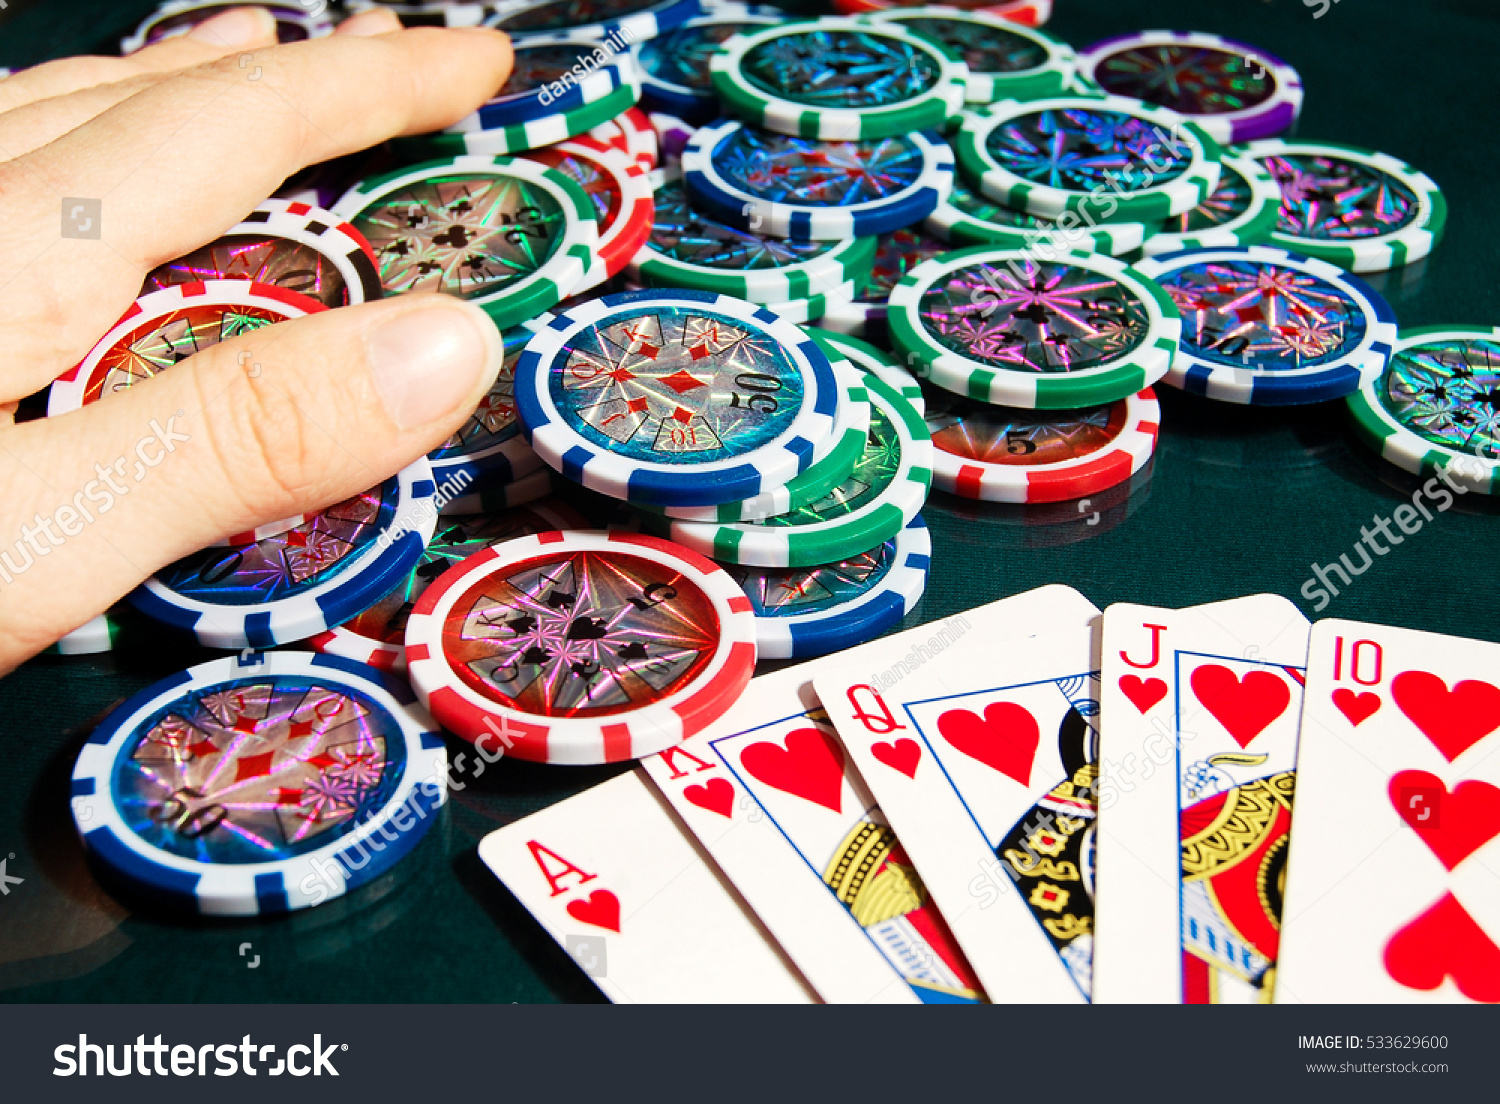 Black gambling game jack poker yourbestonlinecasino.com blogspot casino online